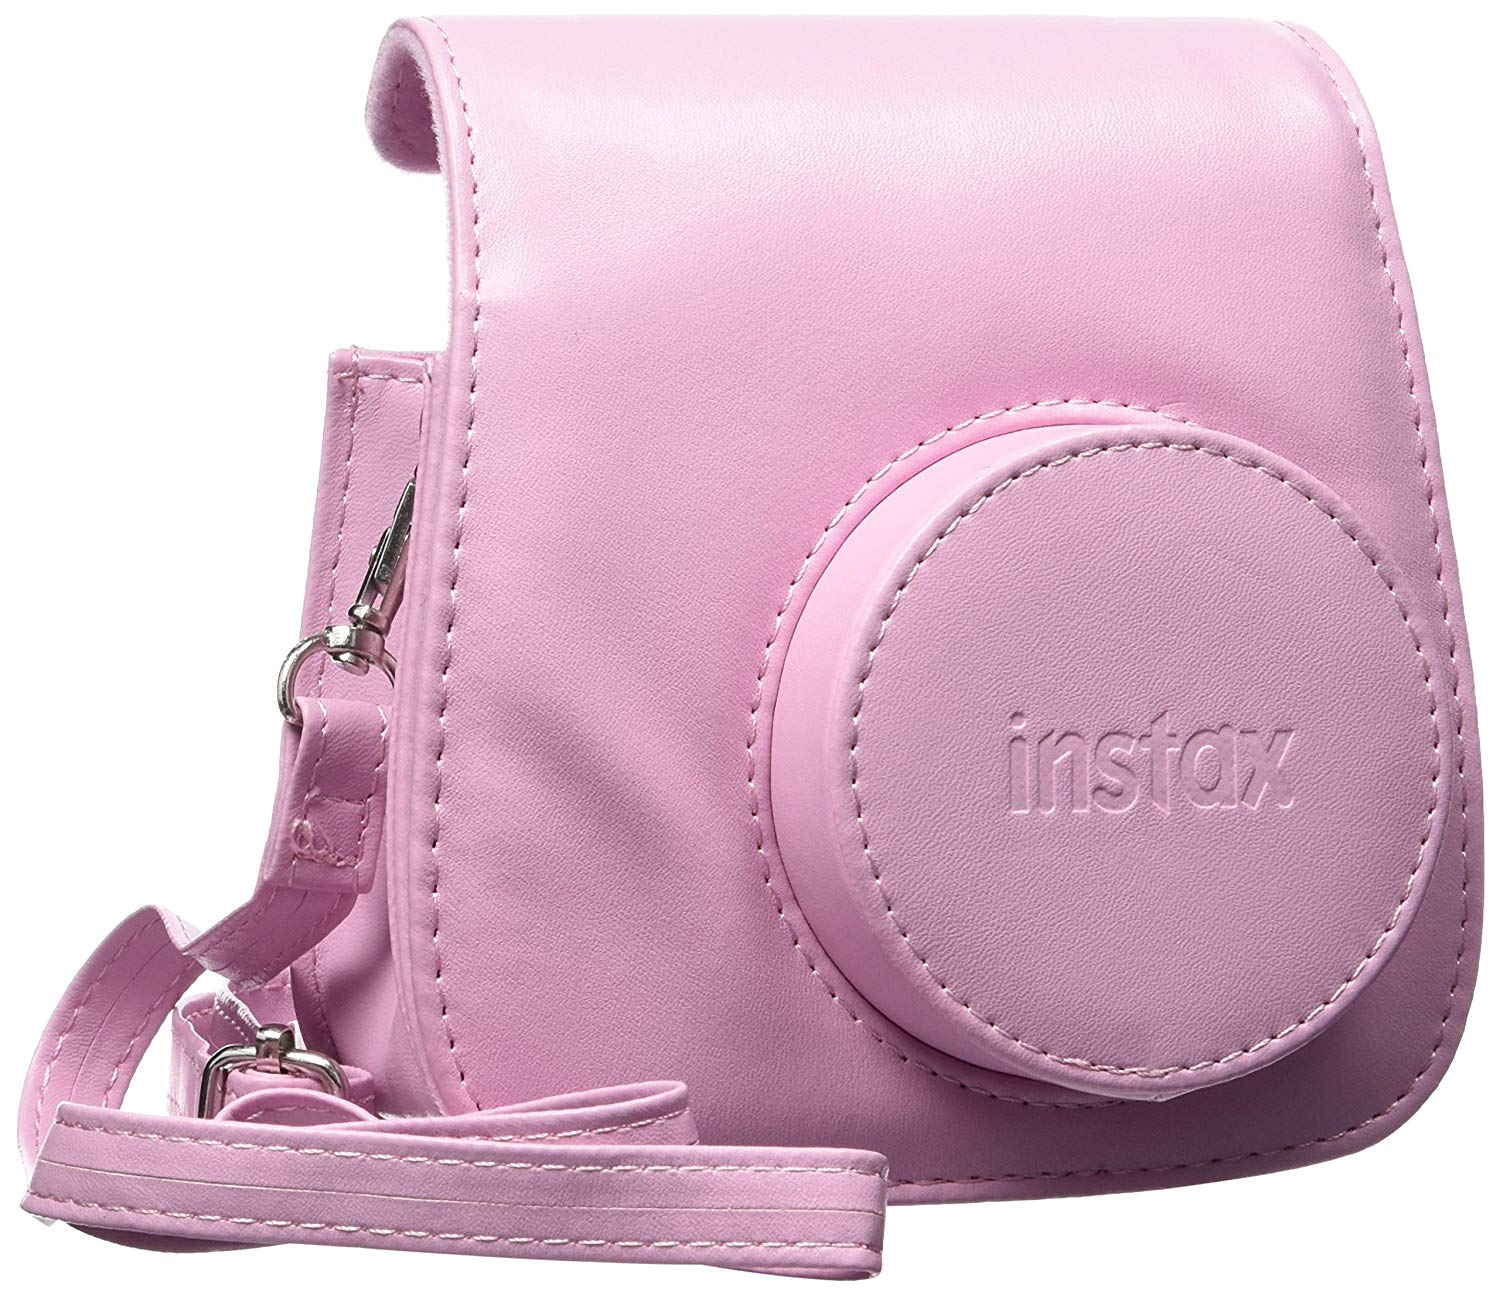 Fujifilm Pink Case for Fuji Instax Mini 8 Camera